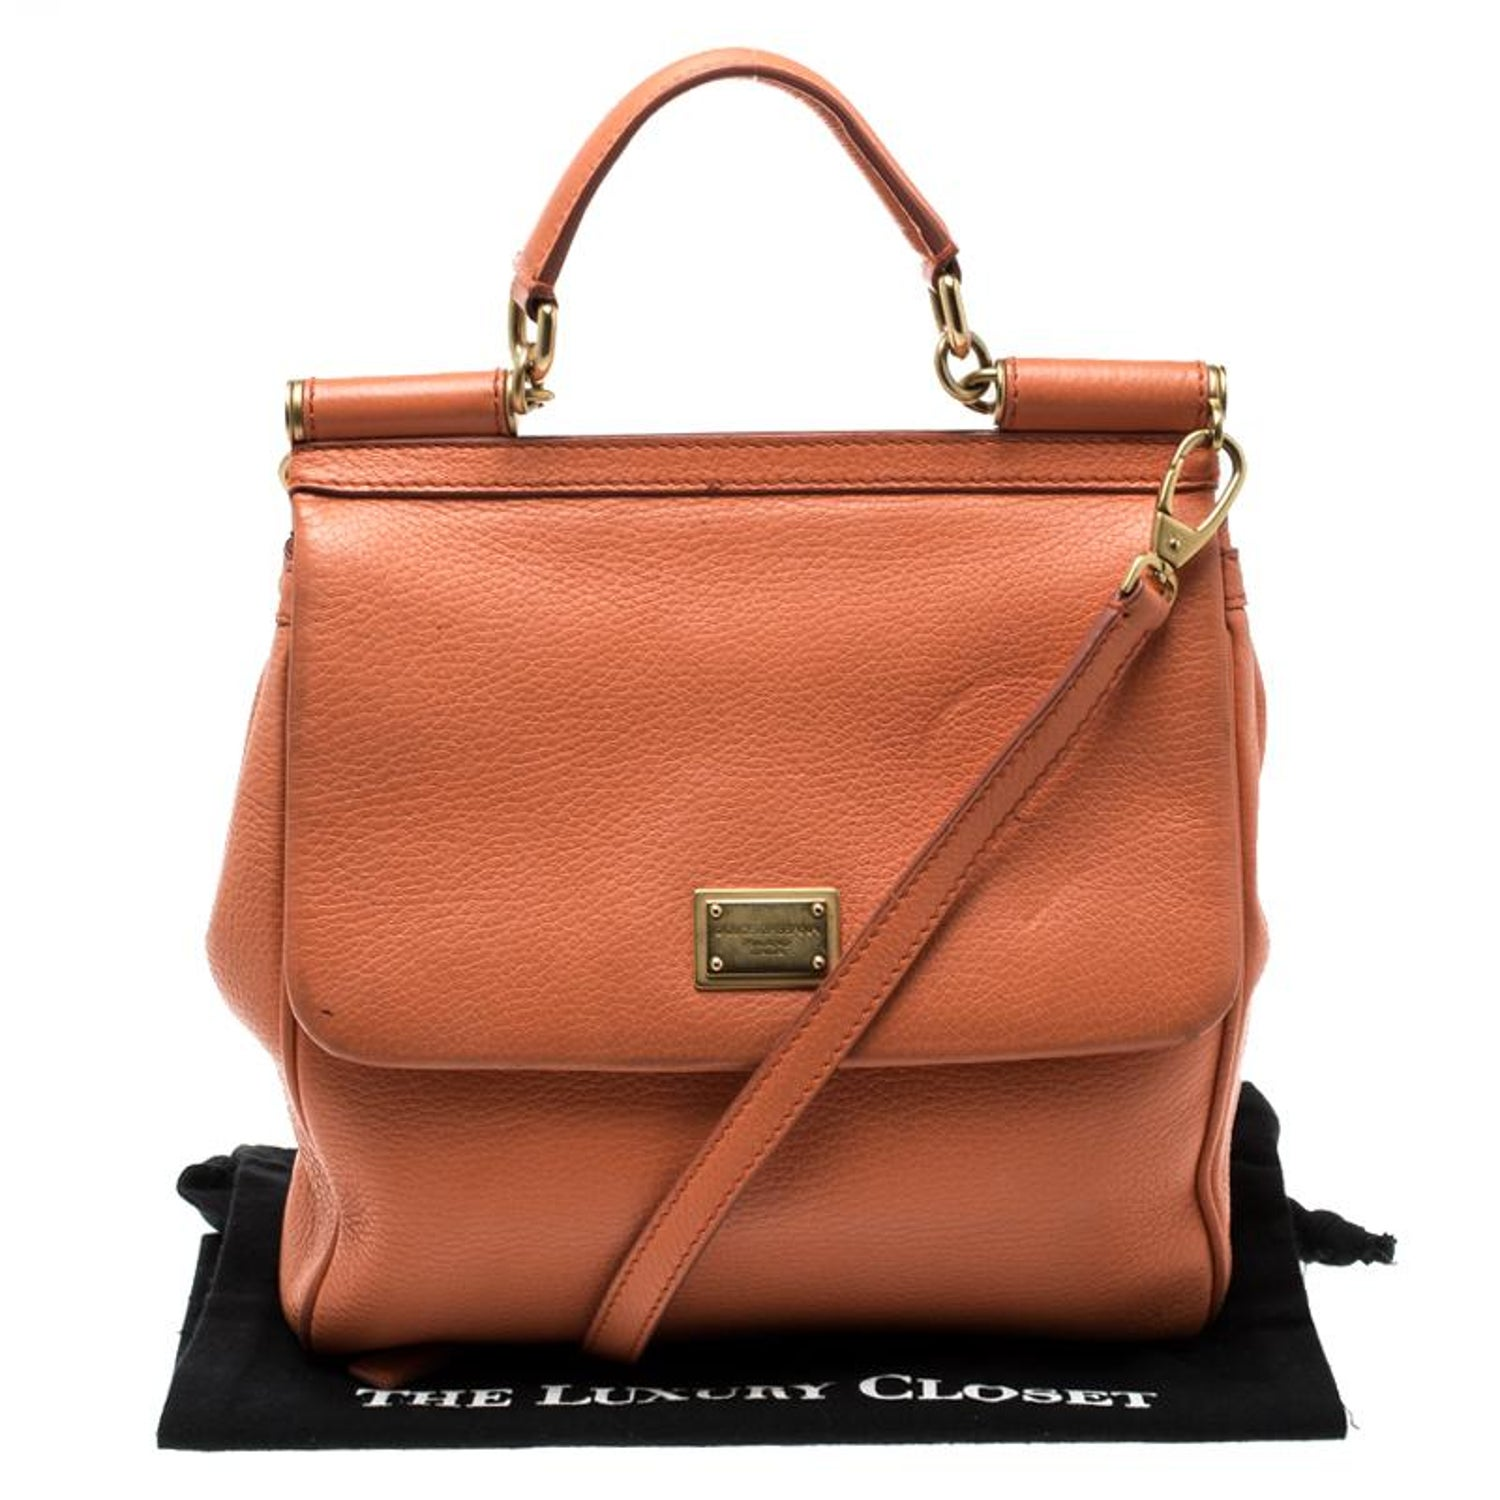 09e942dc7 Dolce and Gabbana Orange Leather Medium Miss Sicily Top Handle Bag For Sale  at 1stdibs